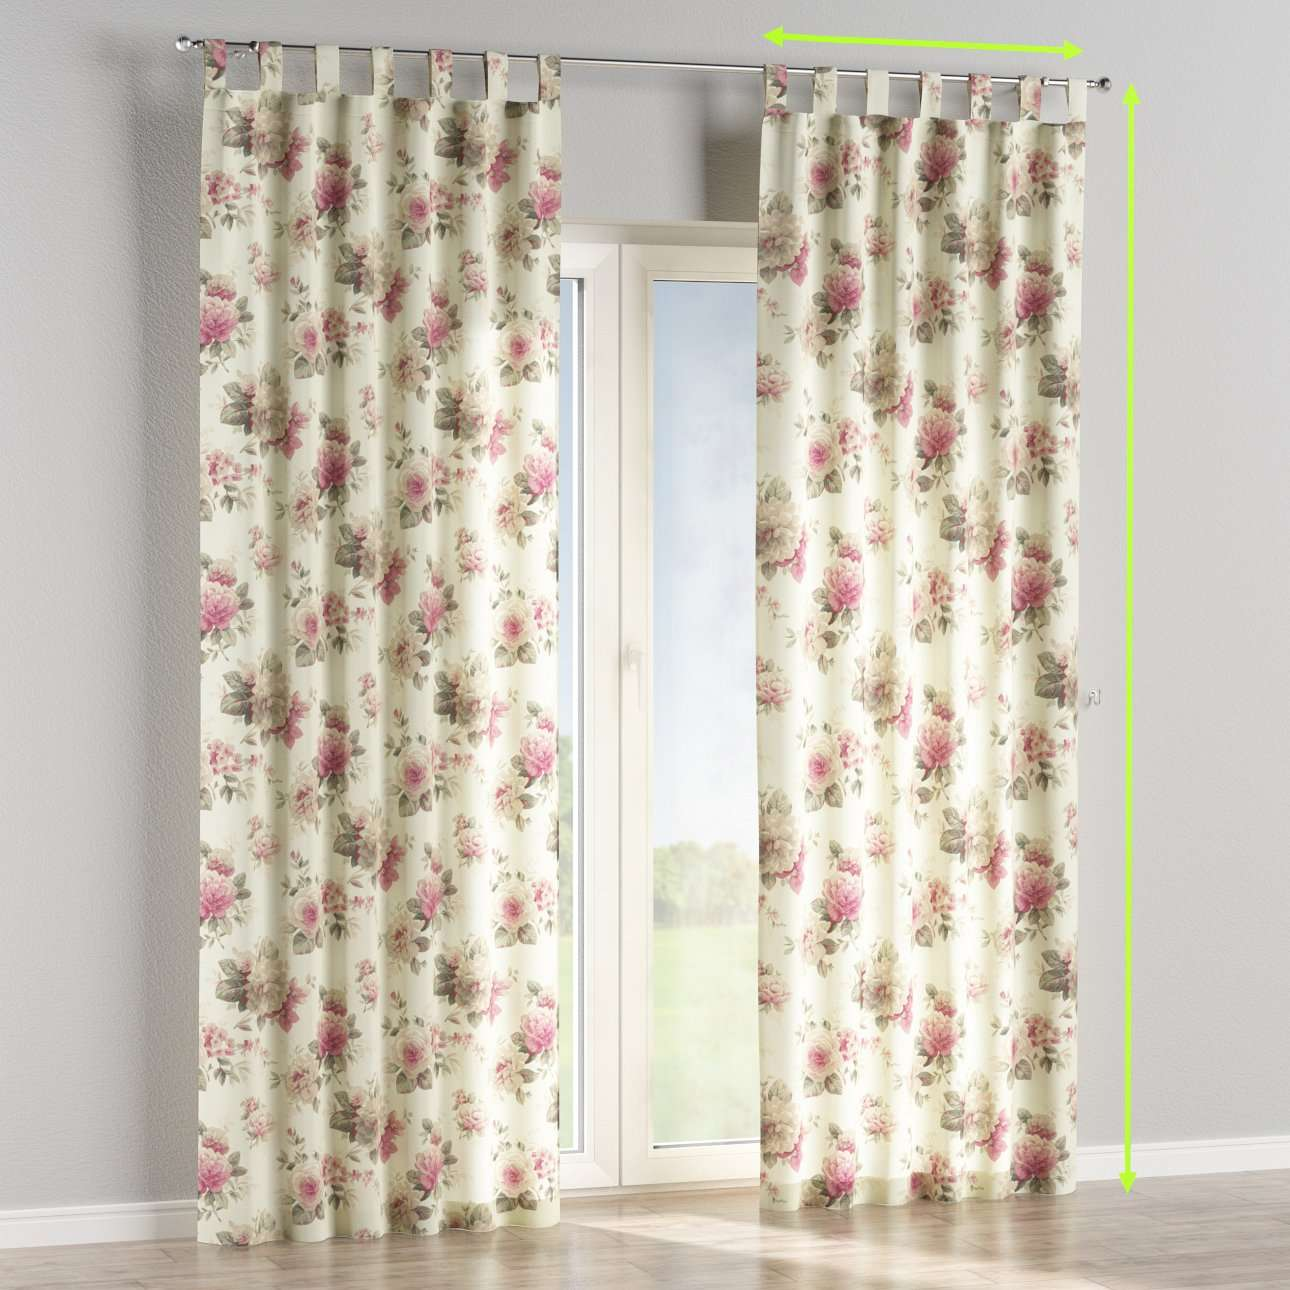 Tab top lined curtains in collection Mirella, fabric: 141-07